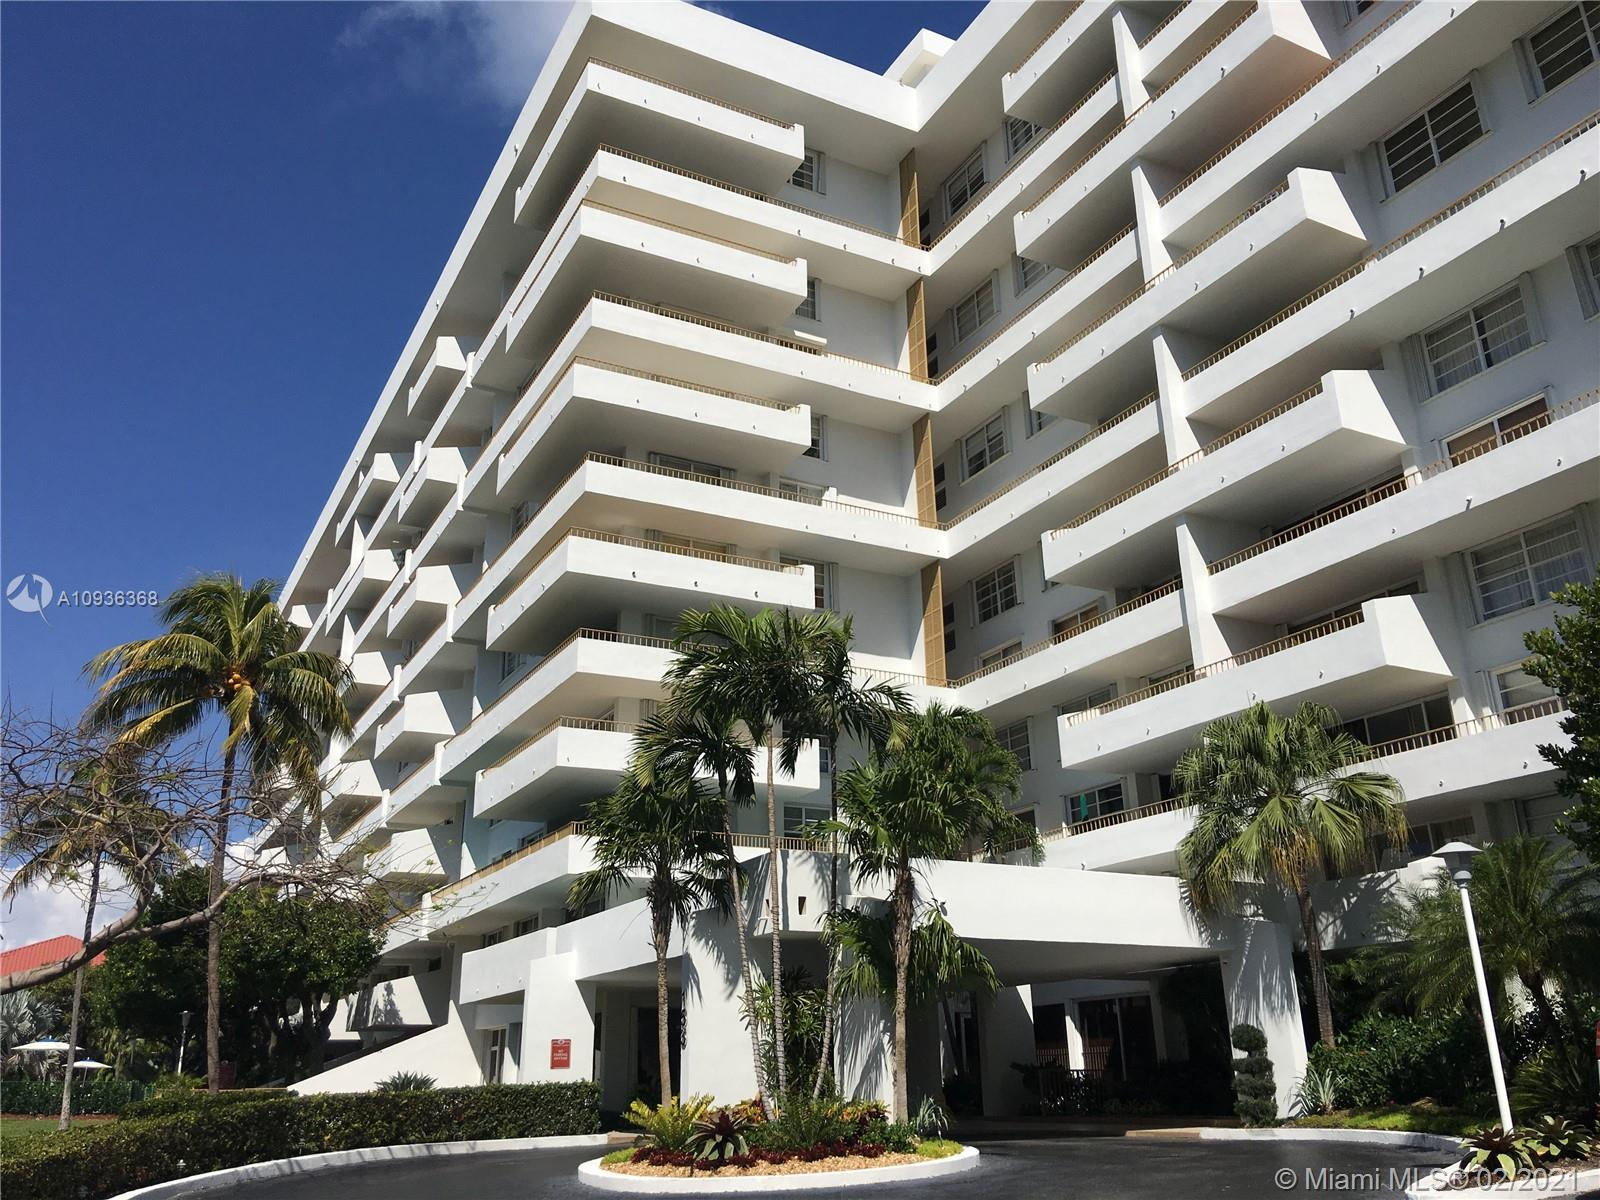 Commodore Club West #204 - 155 Ocean Lane Dr #204, Key Biscayne, FL 33149